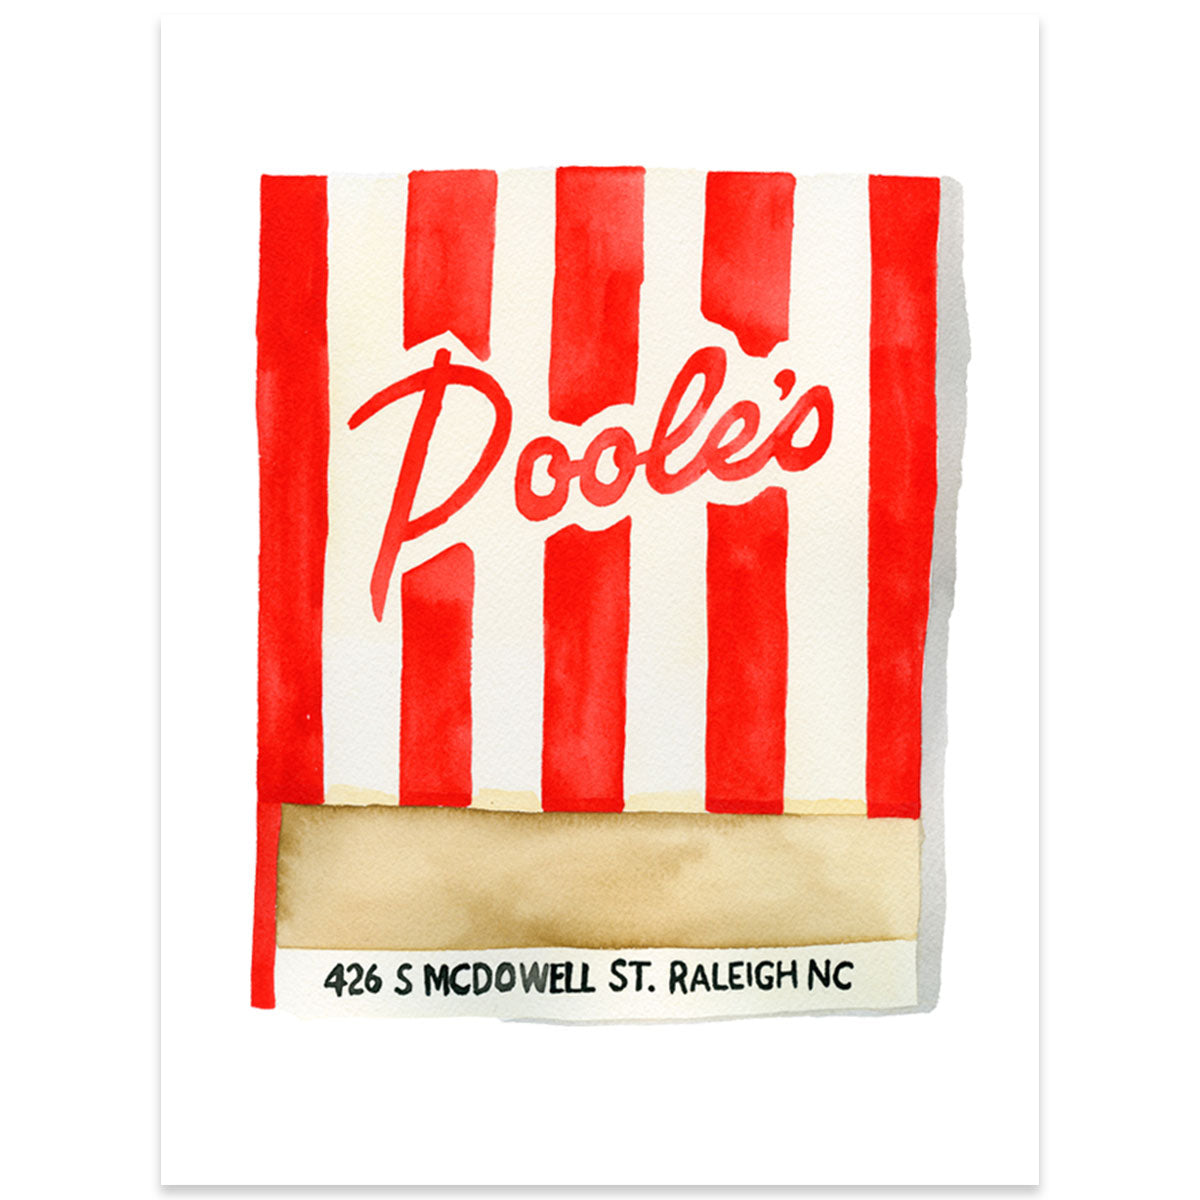 Poole's Diner Matchbook Watercolor Print